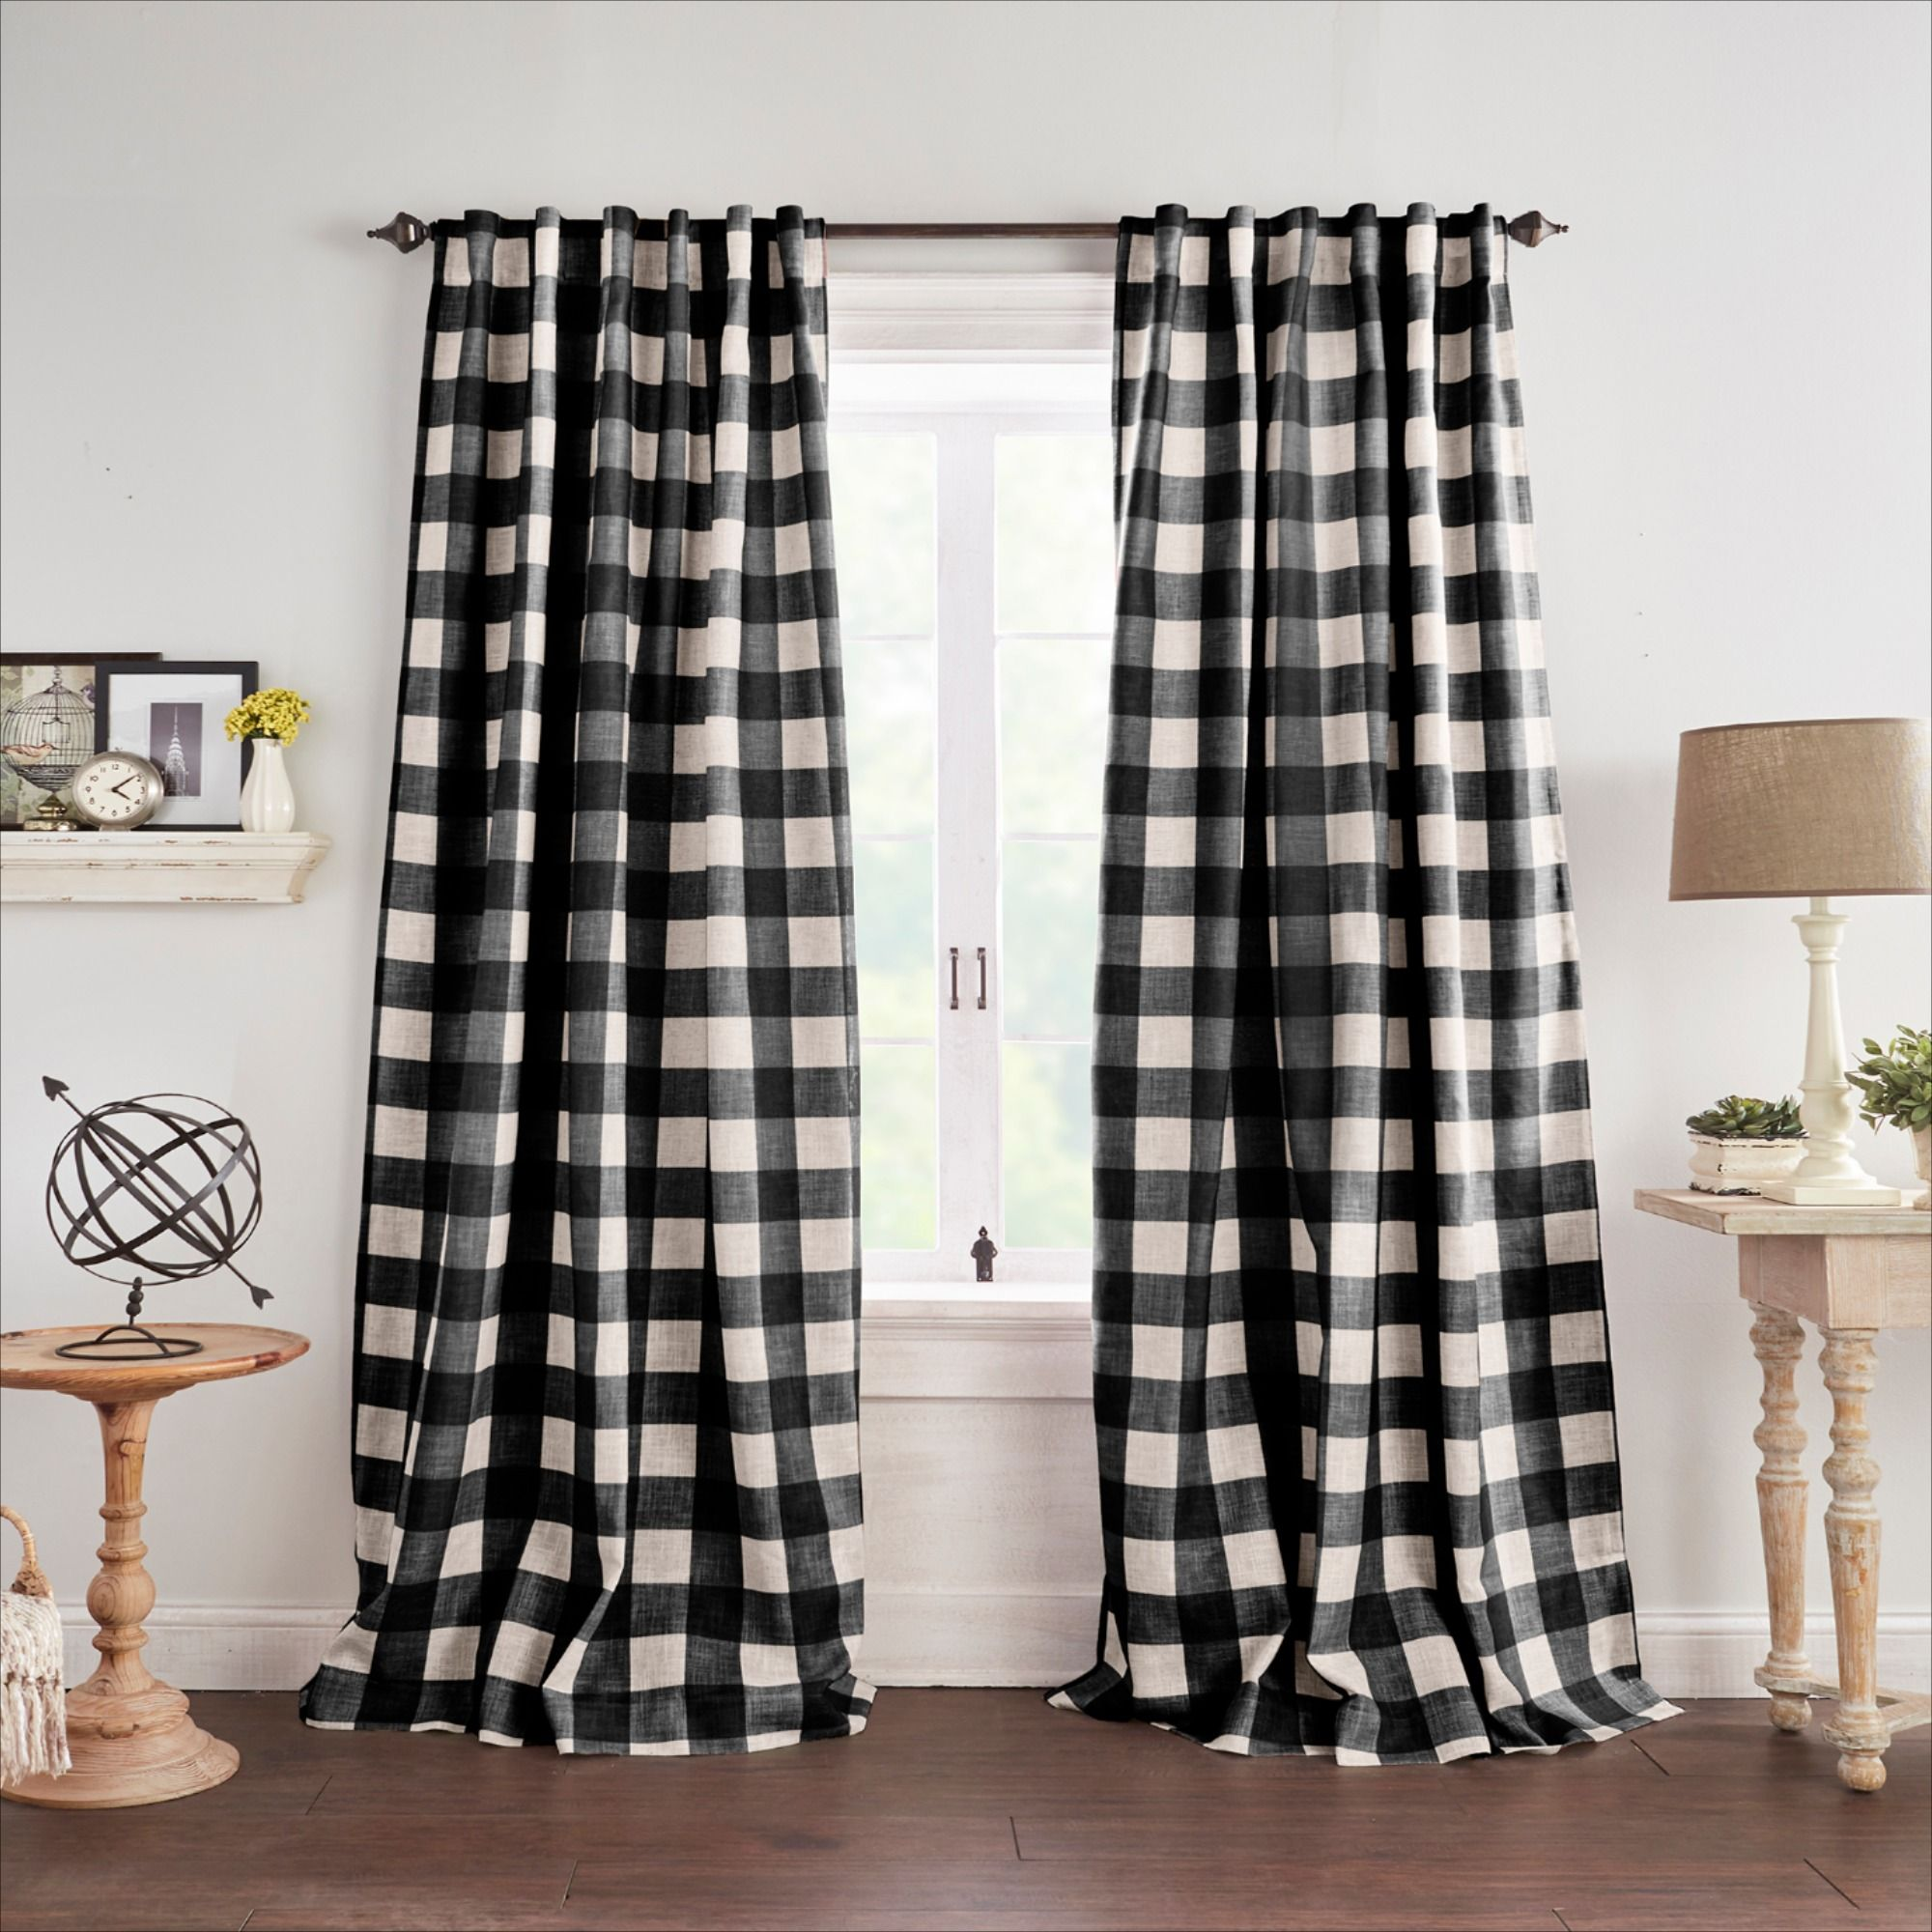 The Grainger Curtains Feature A Distressed Buffalo Check On A Linen Blend Ground These Stylish Window Panels Offer Blackout Benefits A Rich Texture An In 2020 Curtains